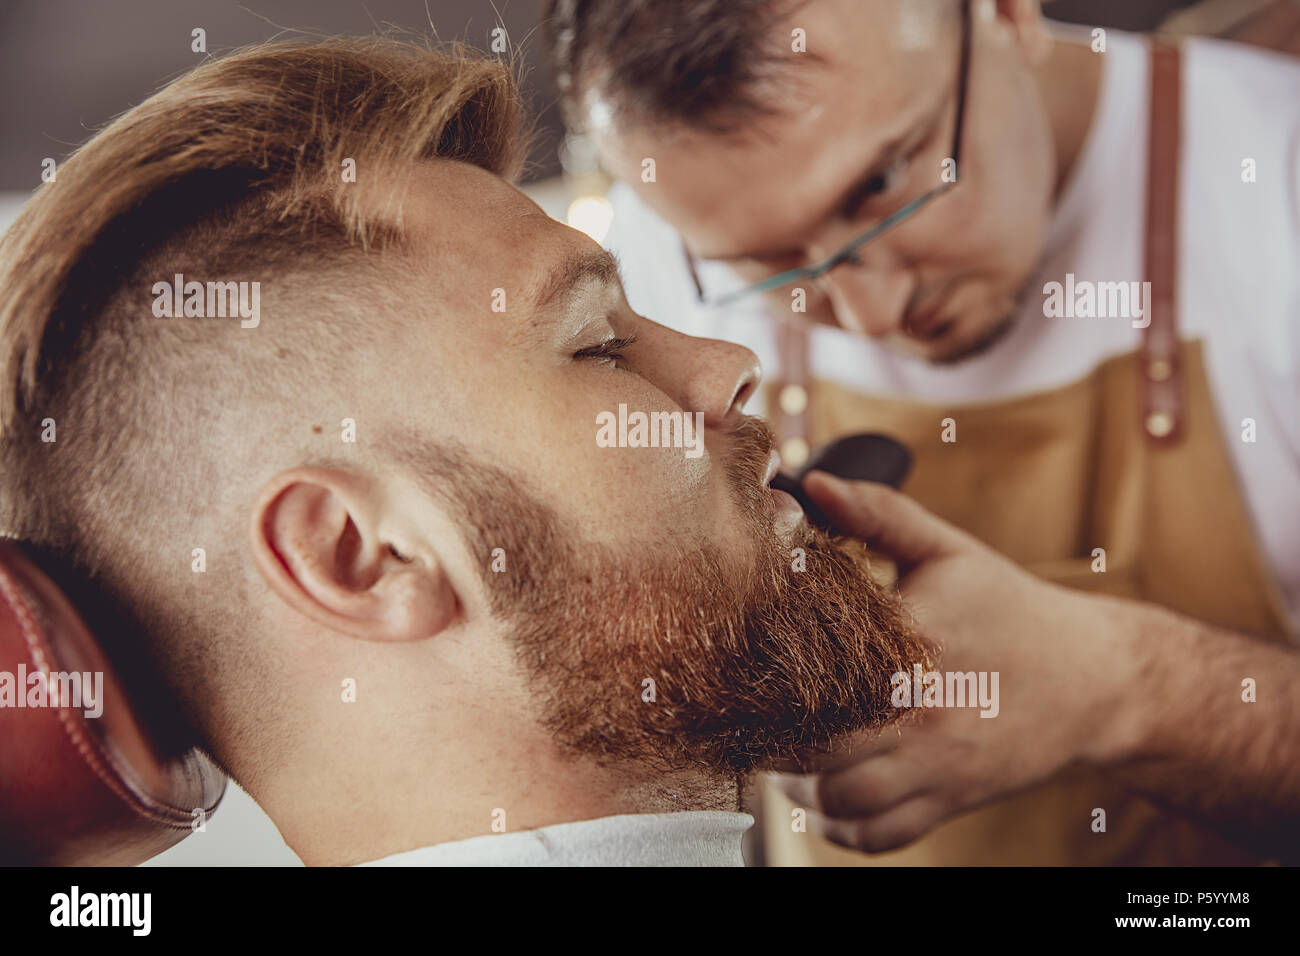 Man in the process of trimming a beard in a barbershop.  Photo in vintage style - Stock Image